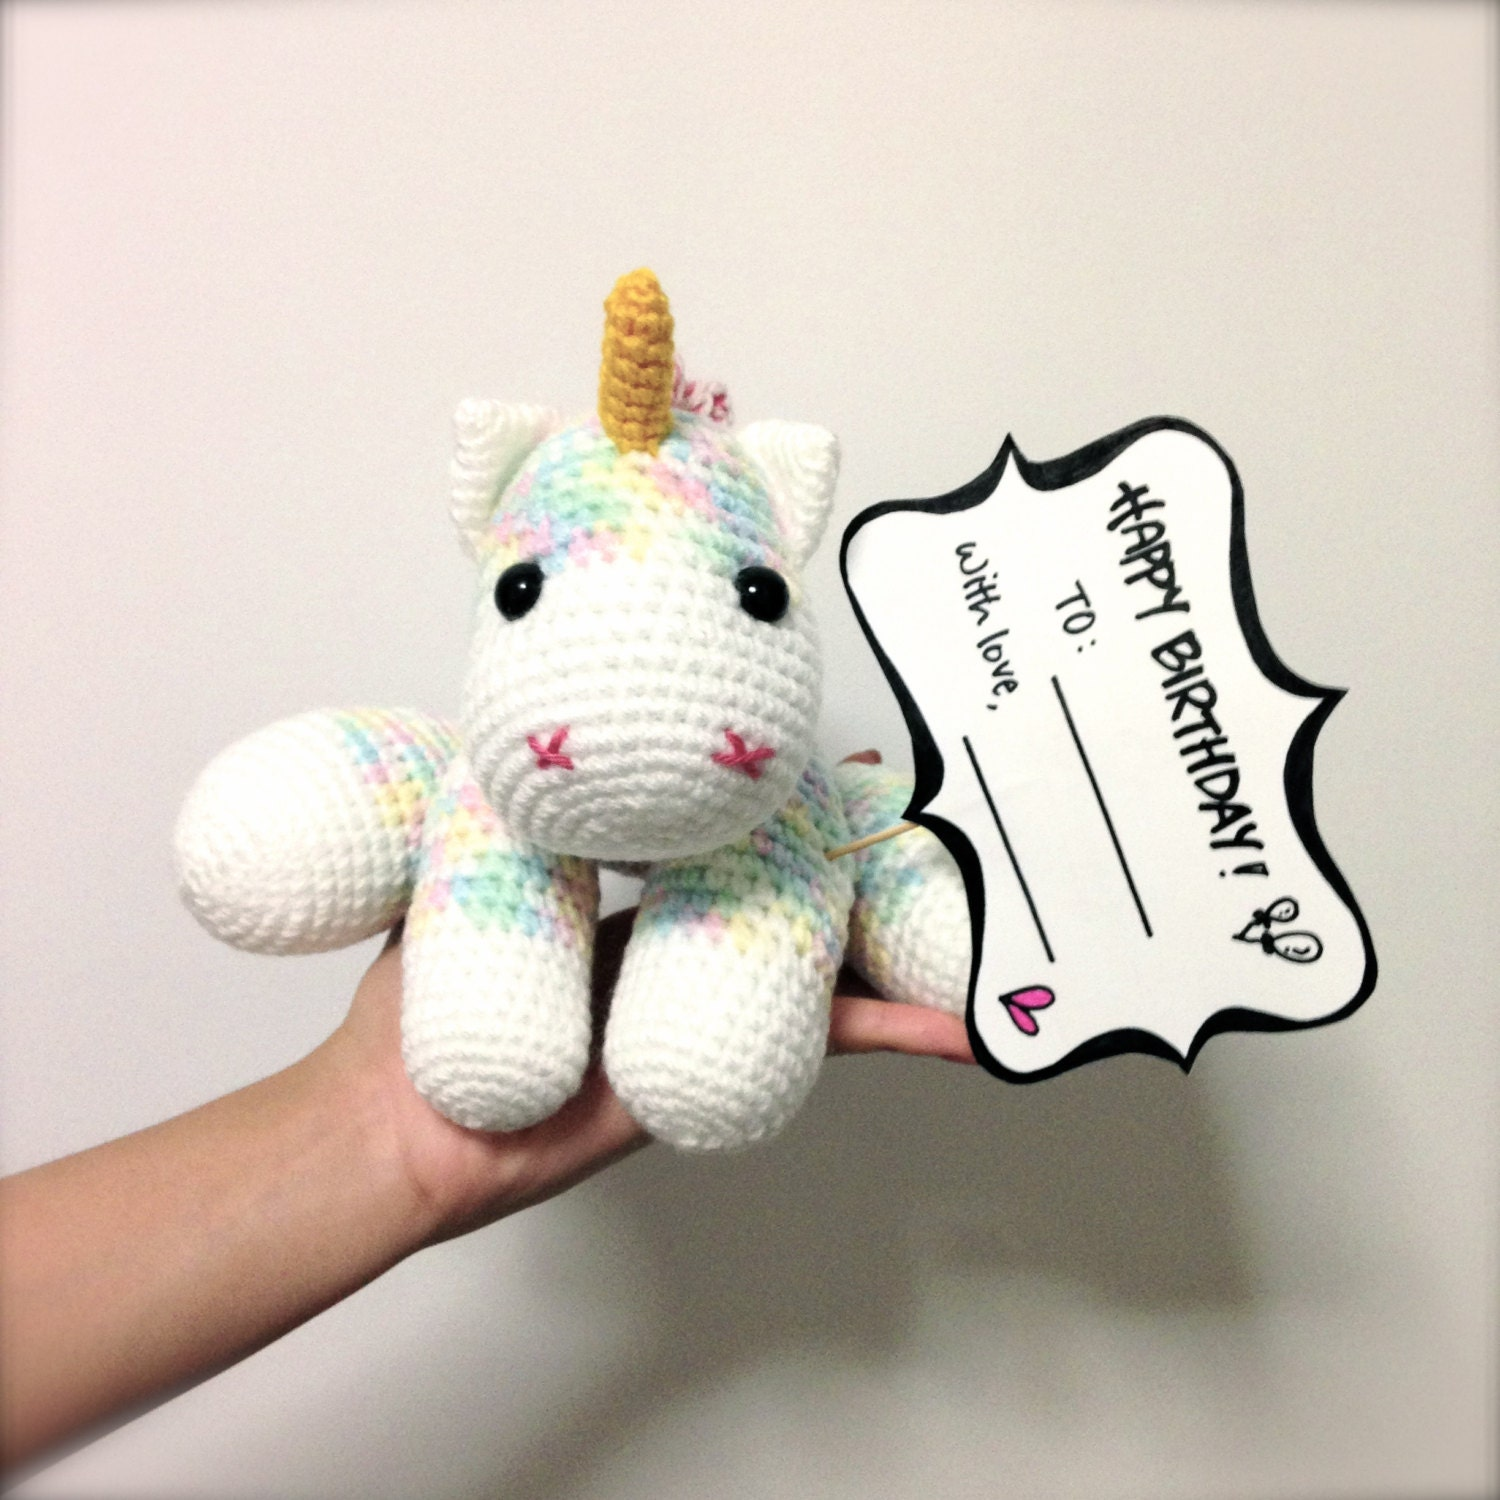 Crochet Unicorn Doll : ... to Christmas Gift Amigurumi Unicorn Crochet Doll Home Decor on Etsy